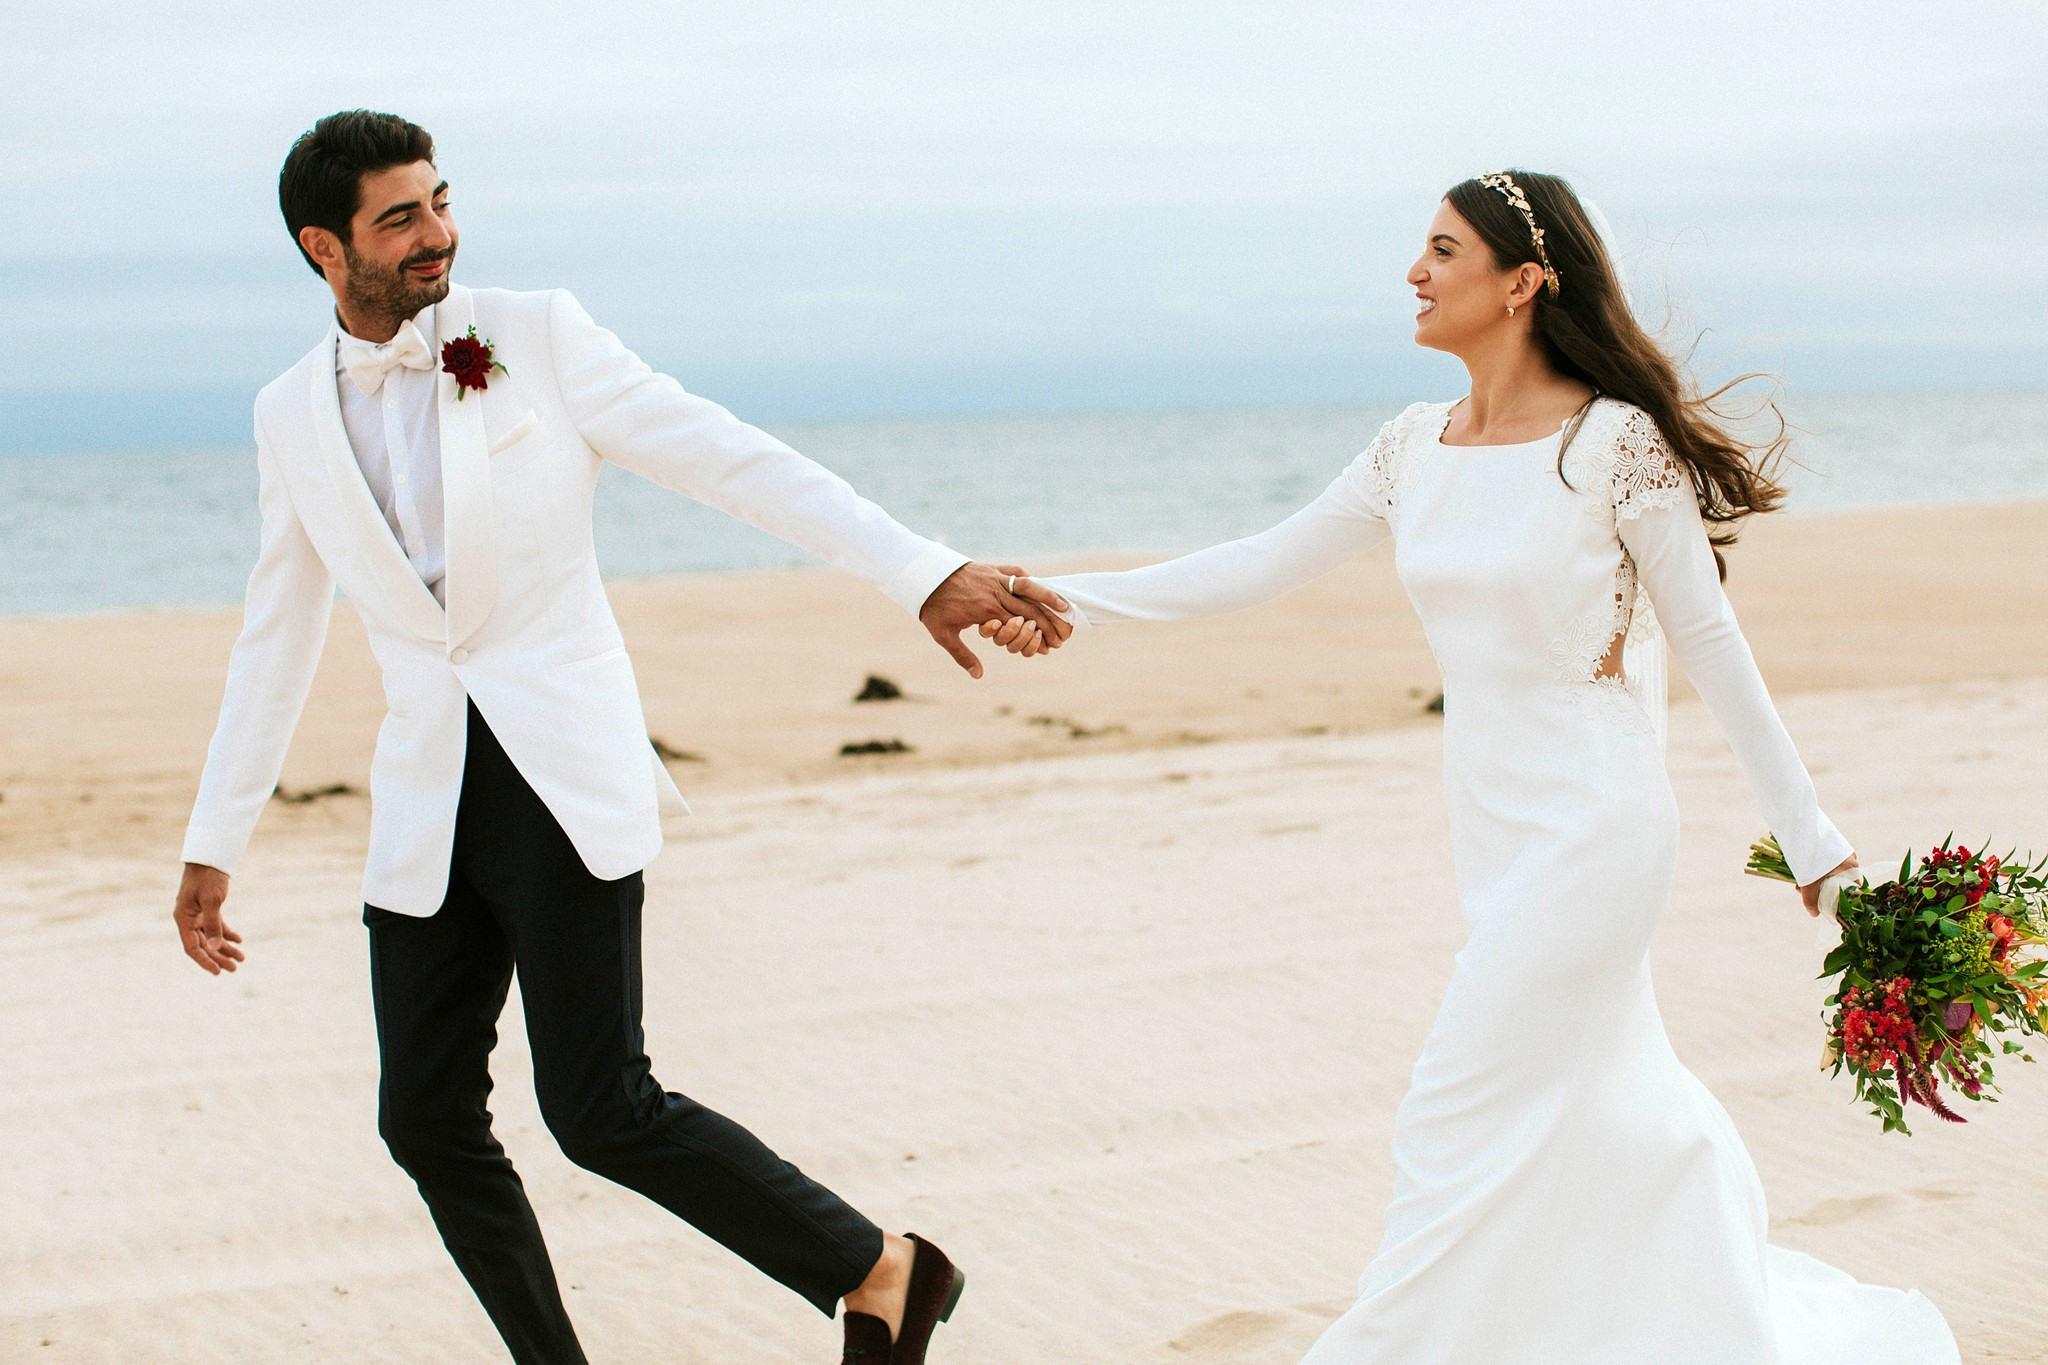 The three biggest wedding trends for 2019